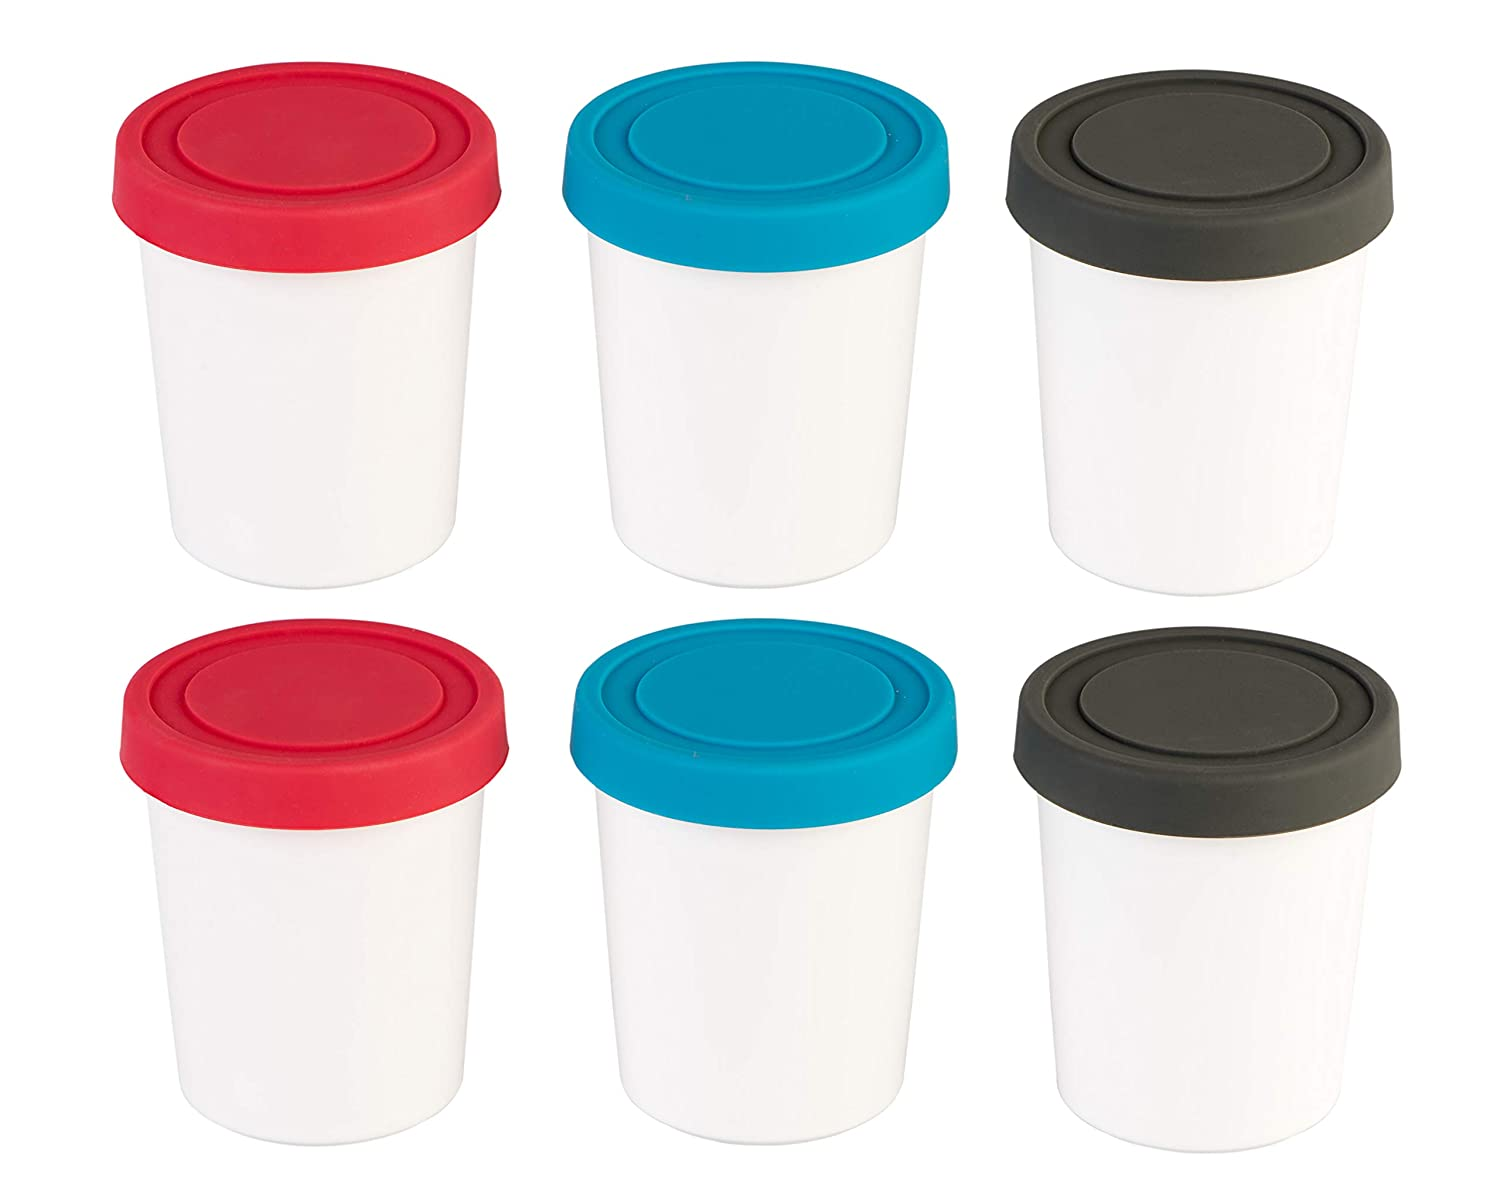 StarPack Portion Control Ice Cream Freezer Containers Set of 6 with Silicone Lids + Bonus 101 Cooking Tips PDF